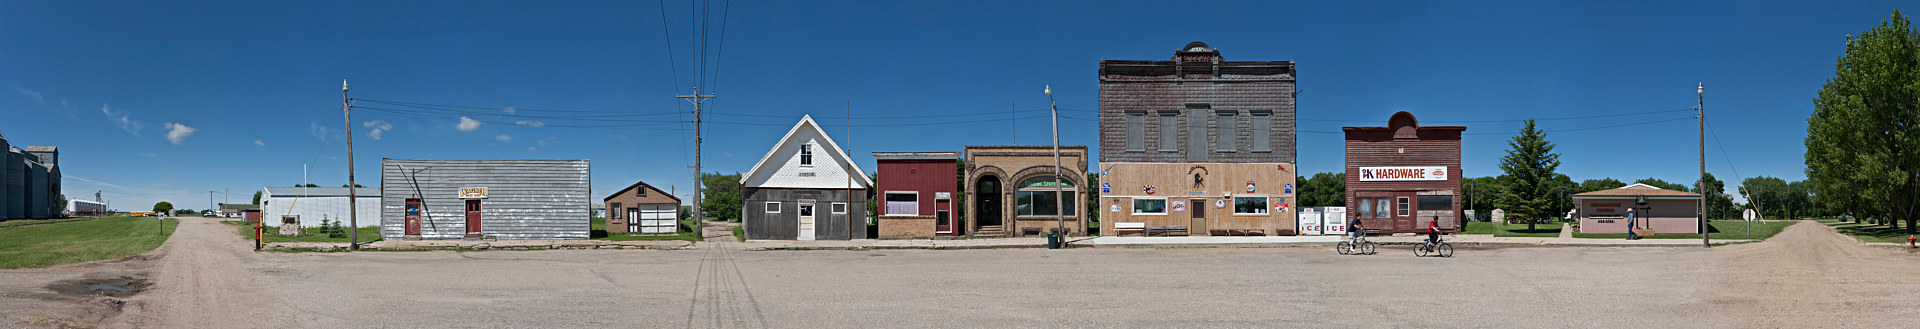 Skyston ND. 26X117 2012 by Danny Singer